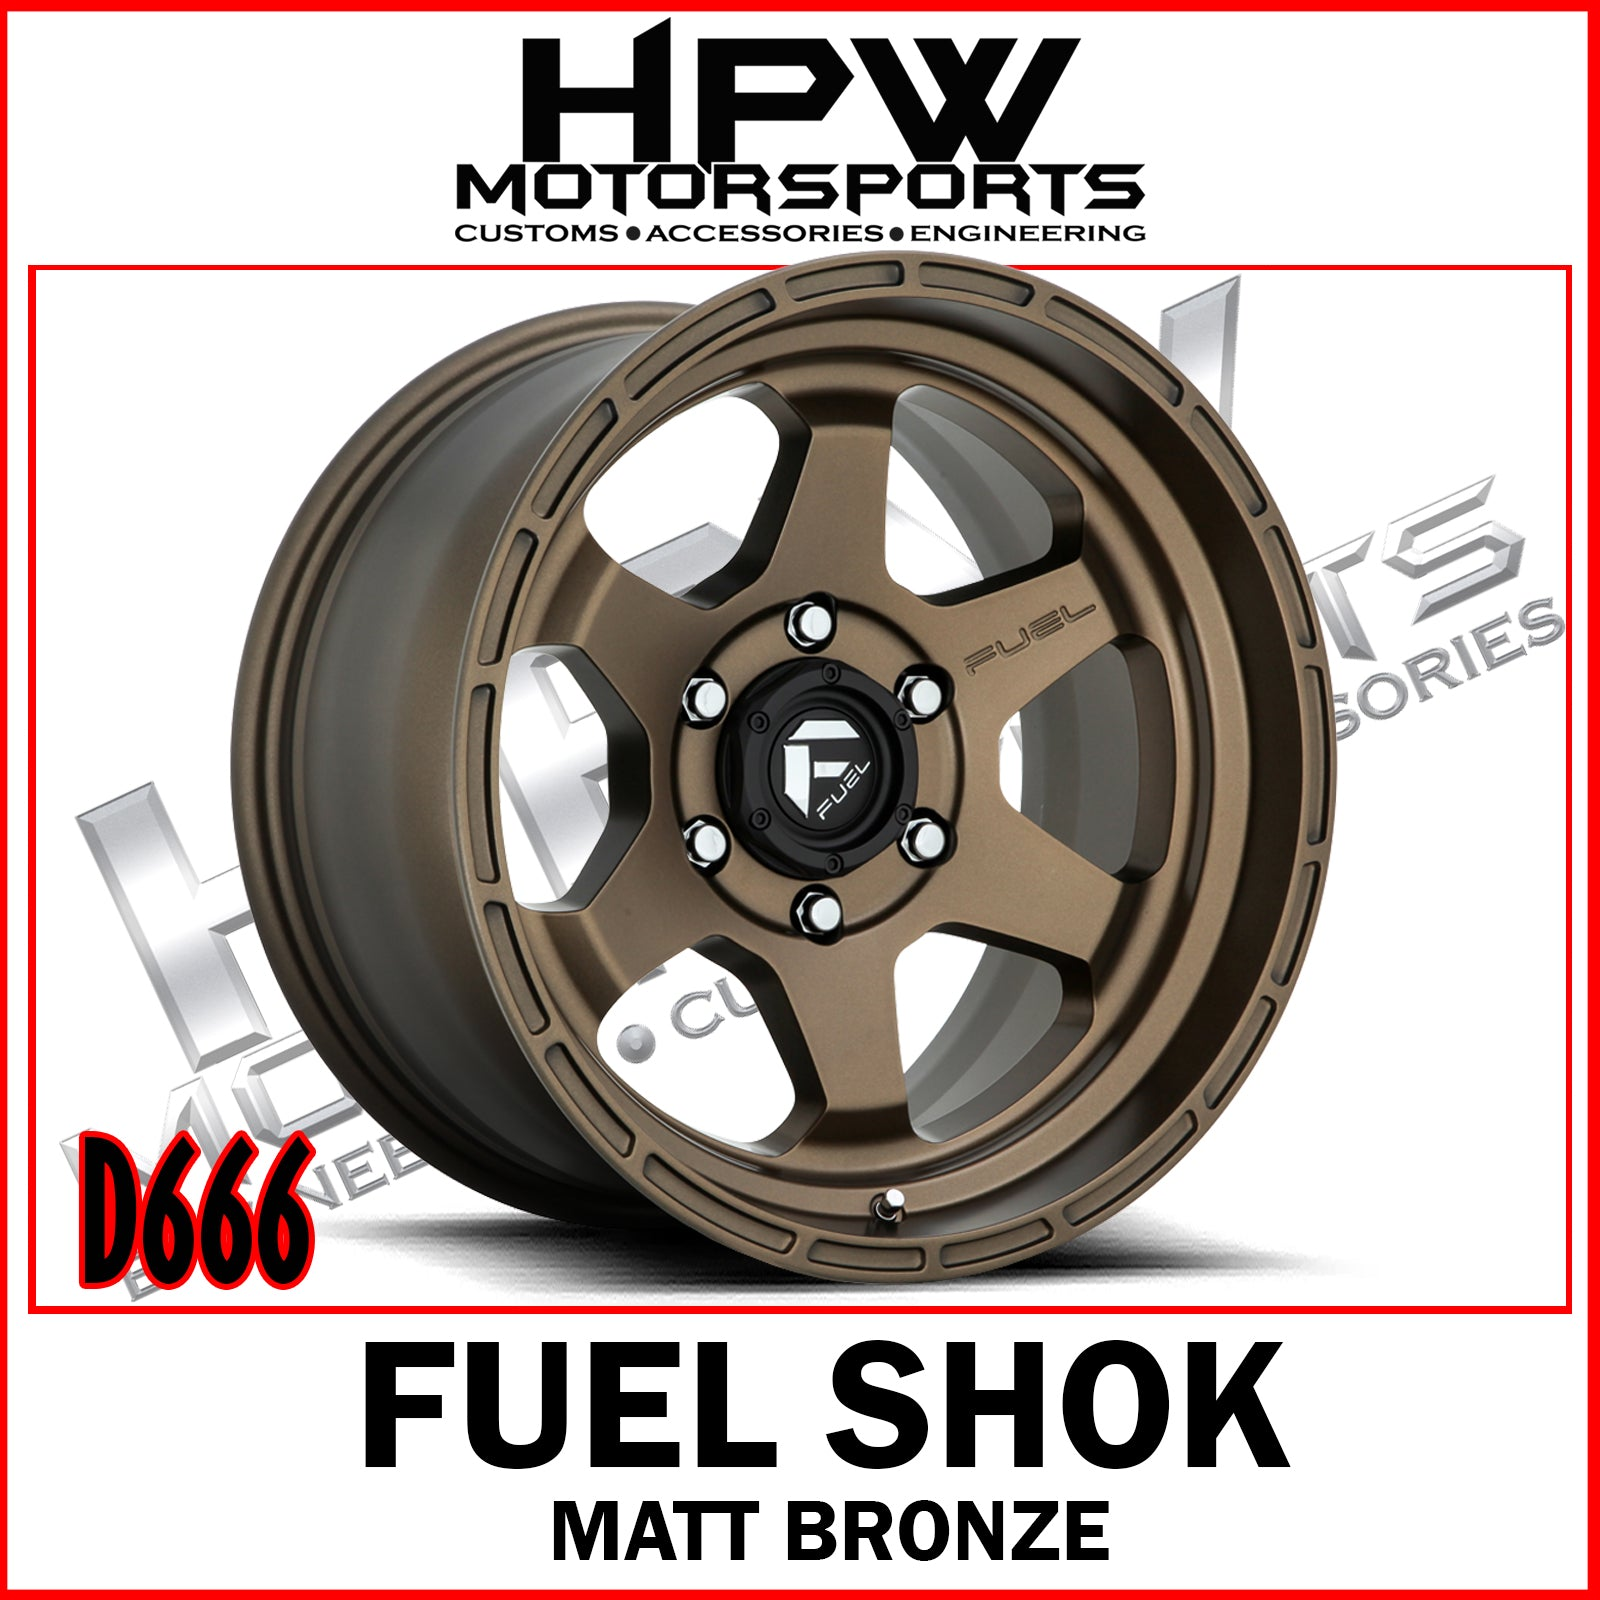 (17x10 -18) D666 FUEL SHOK - MATT BRONZE - Set of 4